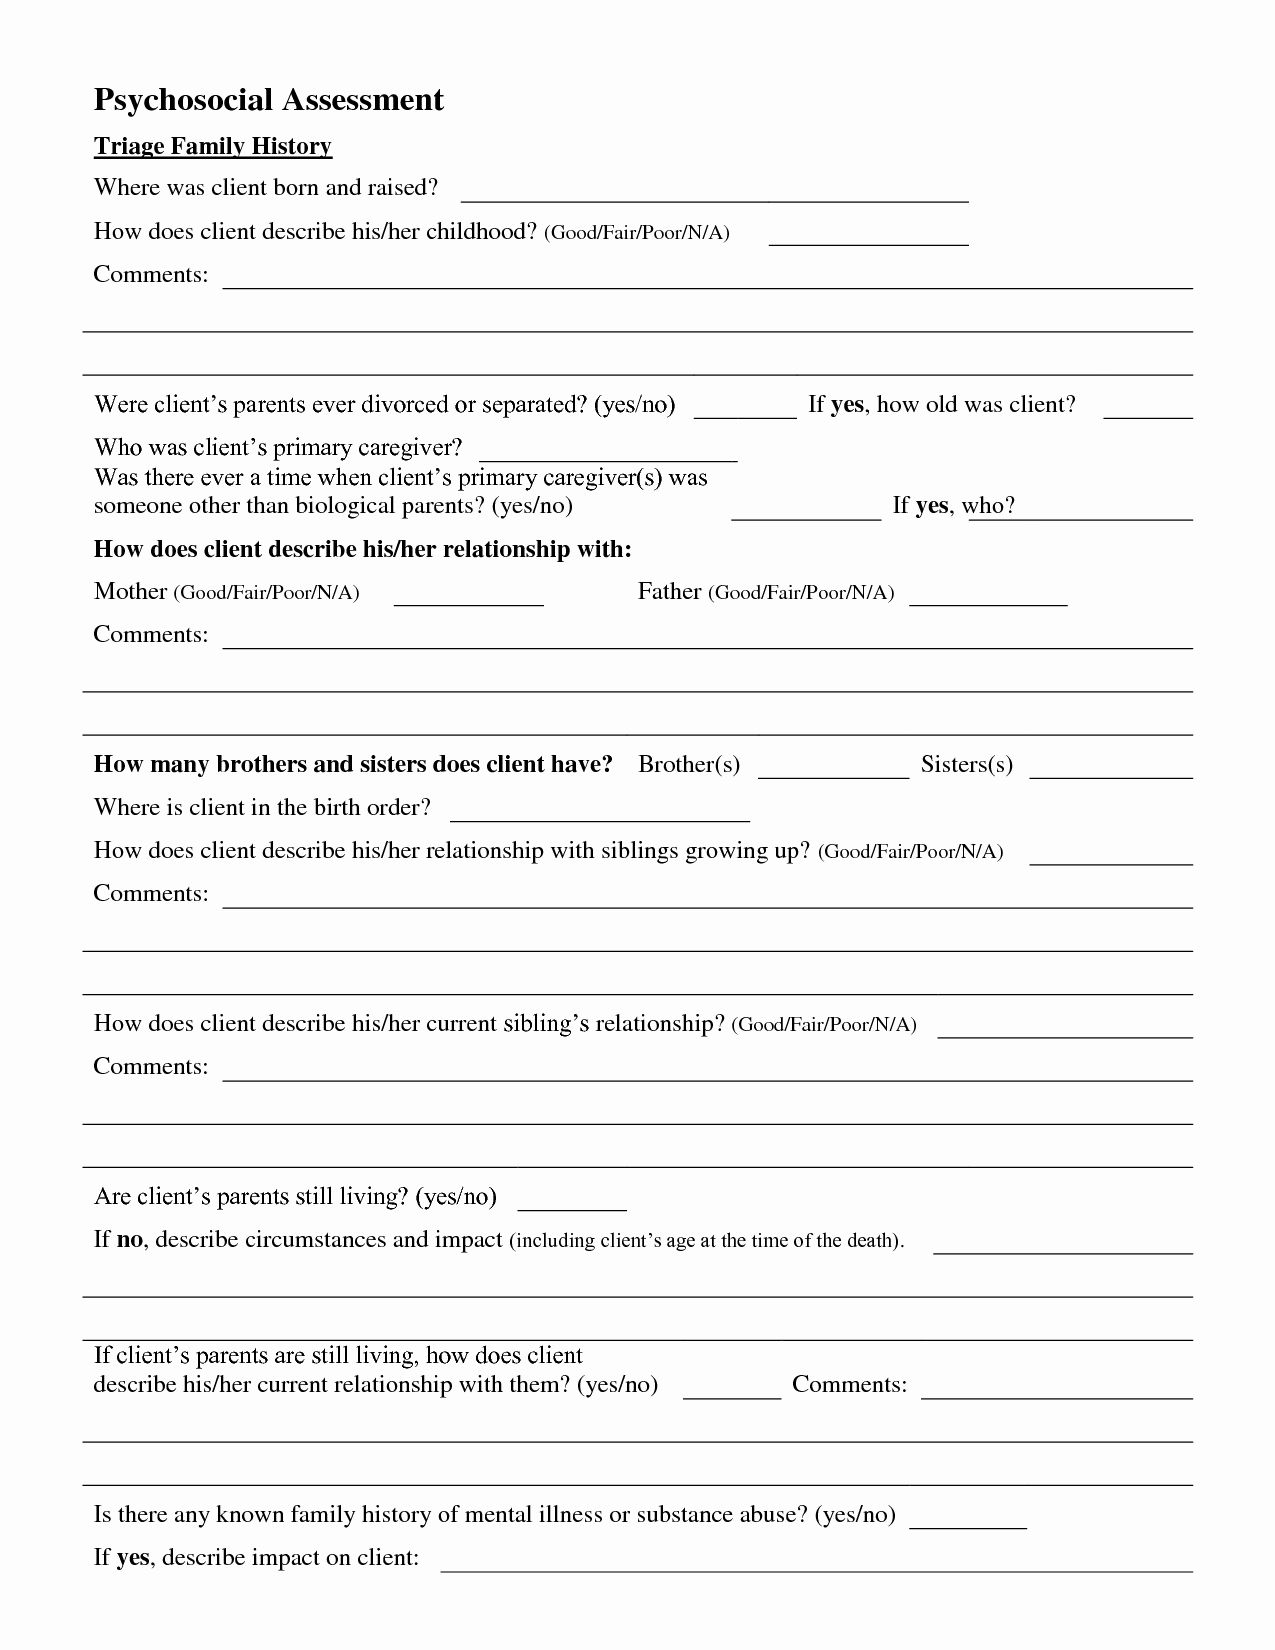 Social Work Assessment Form New Psychosocial Assessment